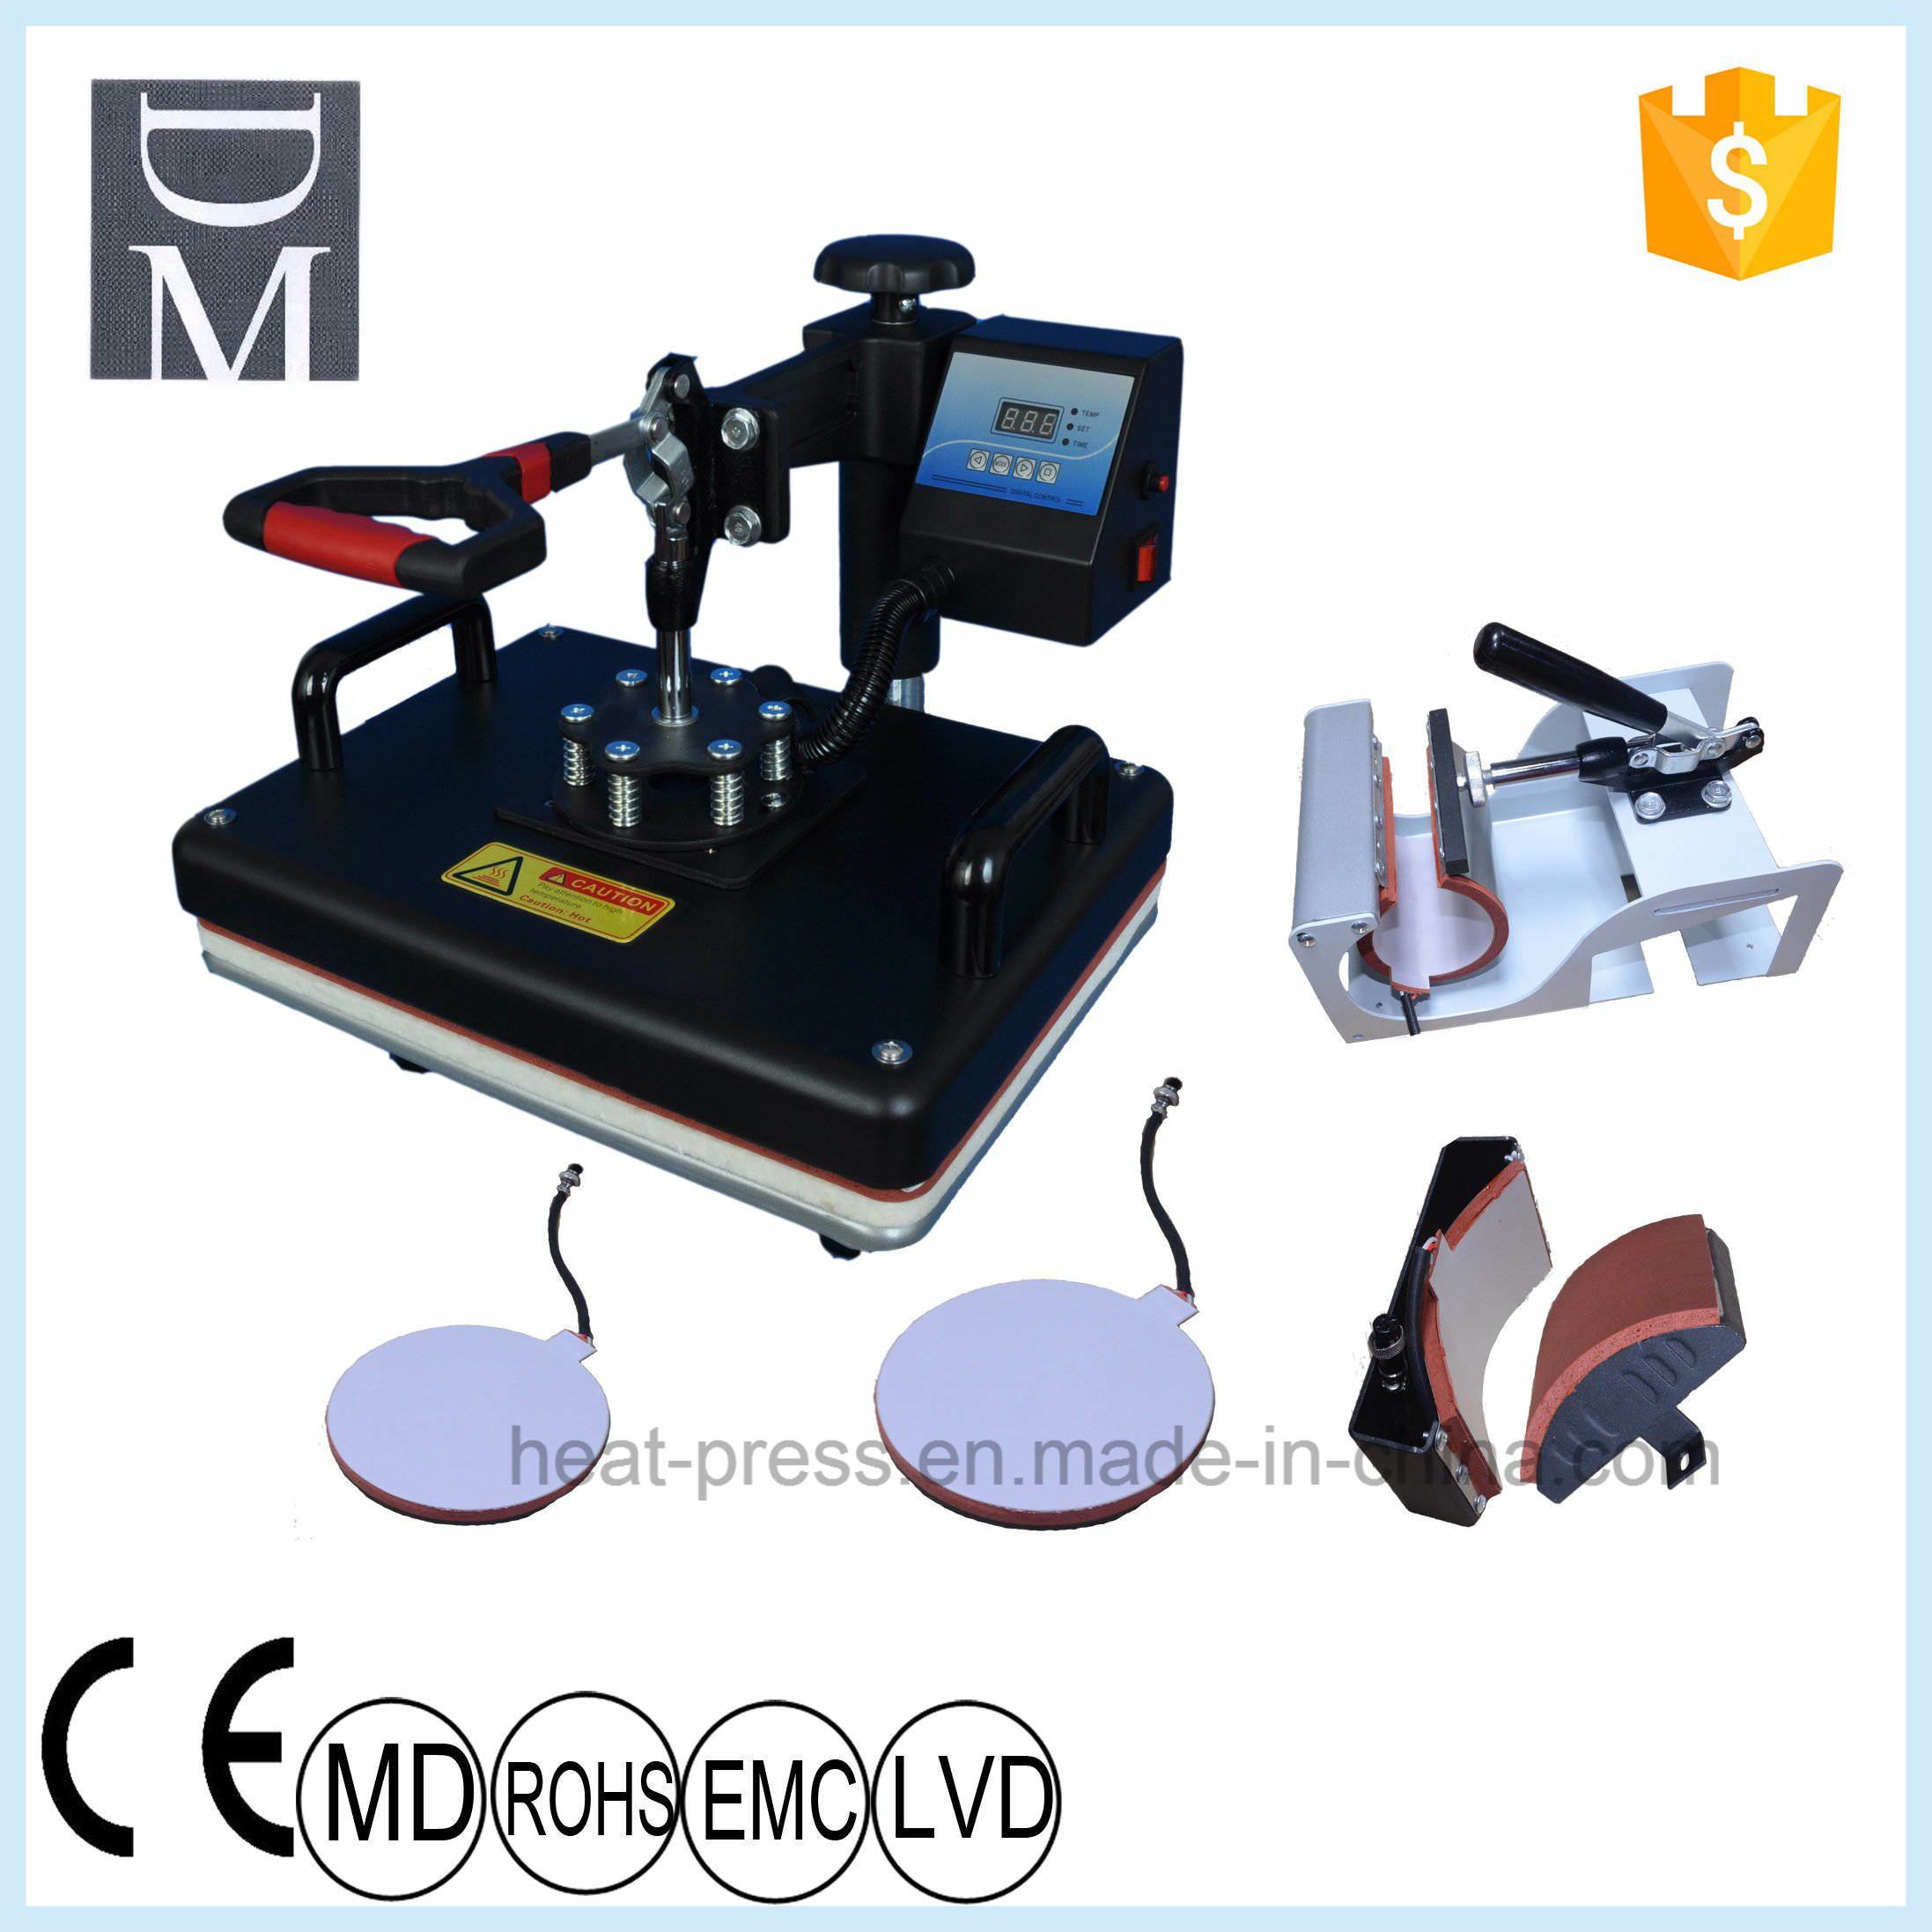 Sublimation Press Hot Item 5in1 Combo Heat Press Machines For Sale Fabrication Heat Transfer Printing Process T Shirt Sublimation Pressing